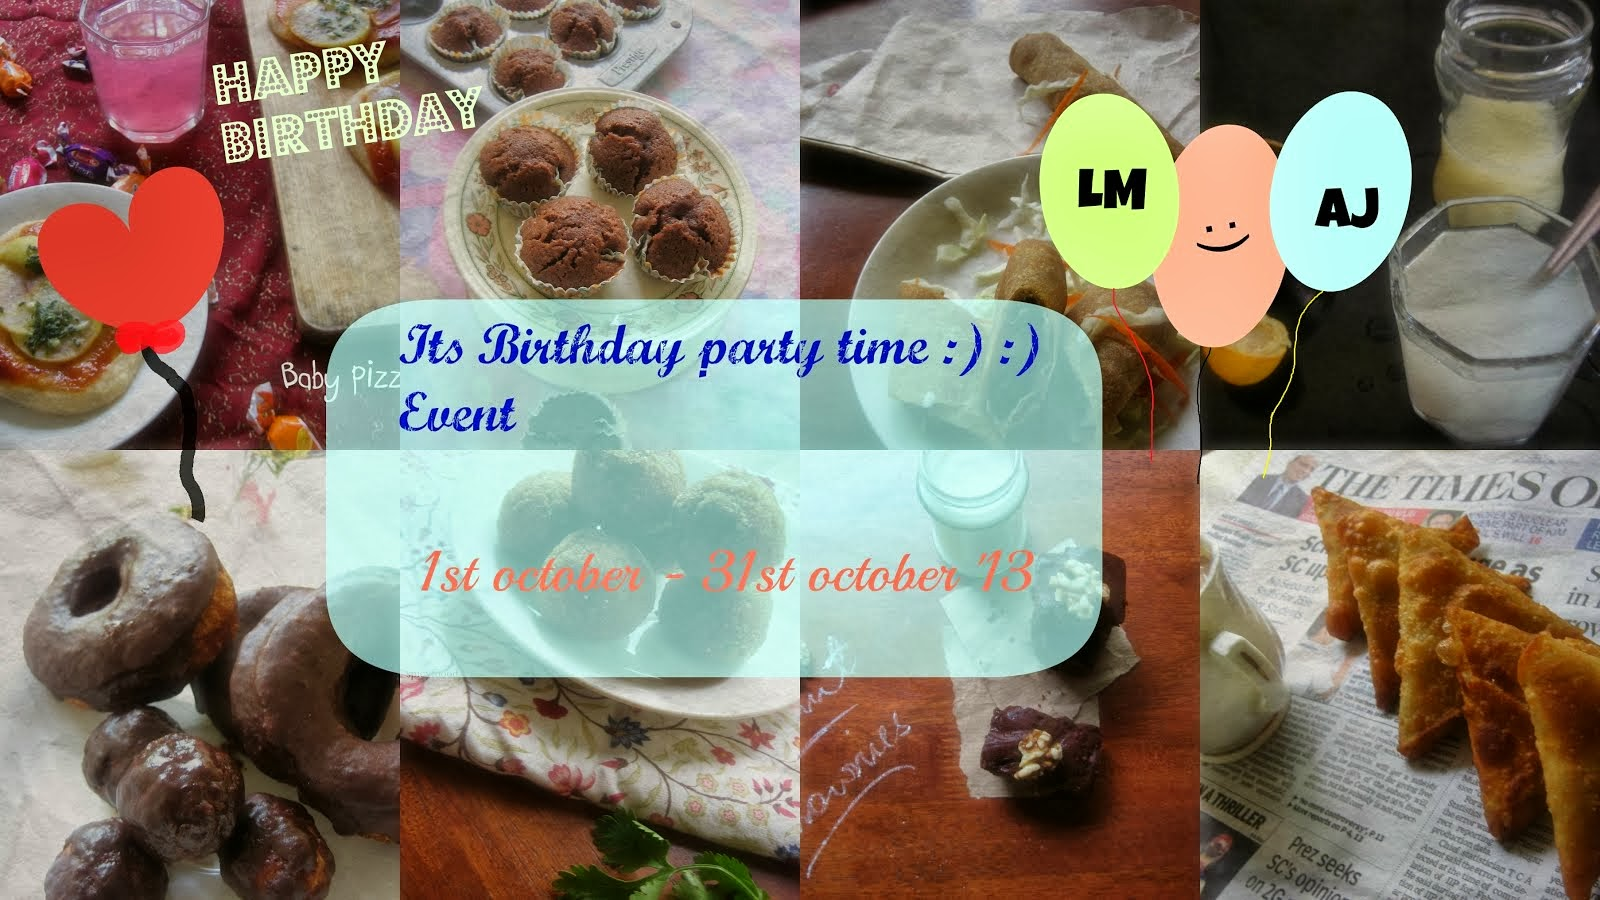 Come join the Birthday Party